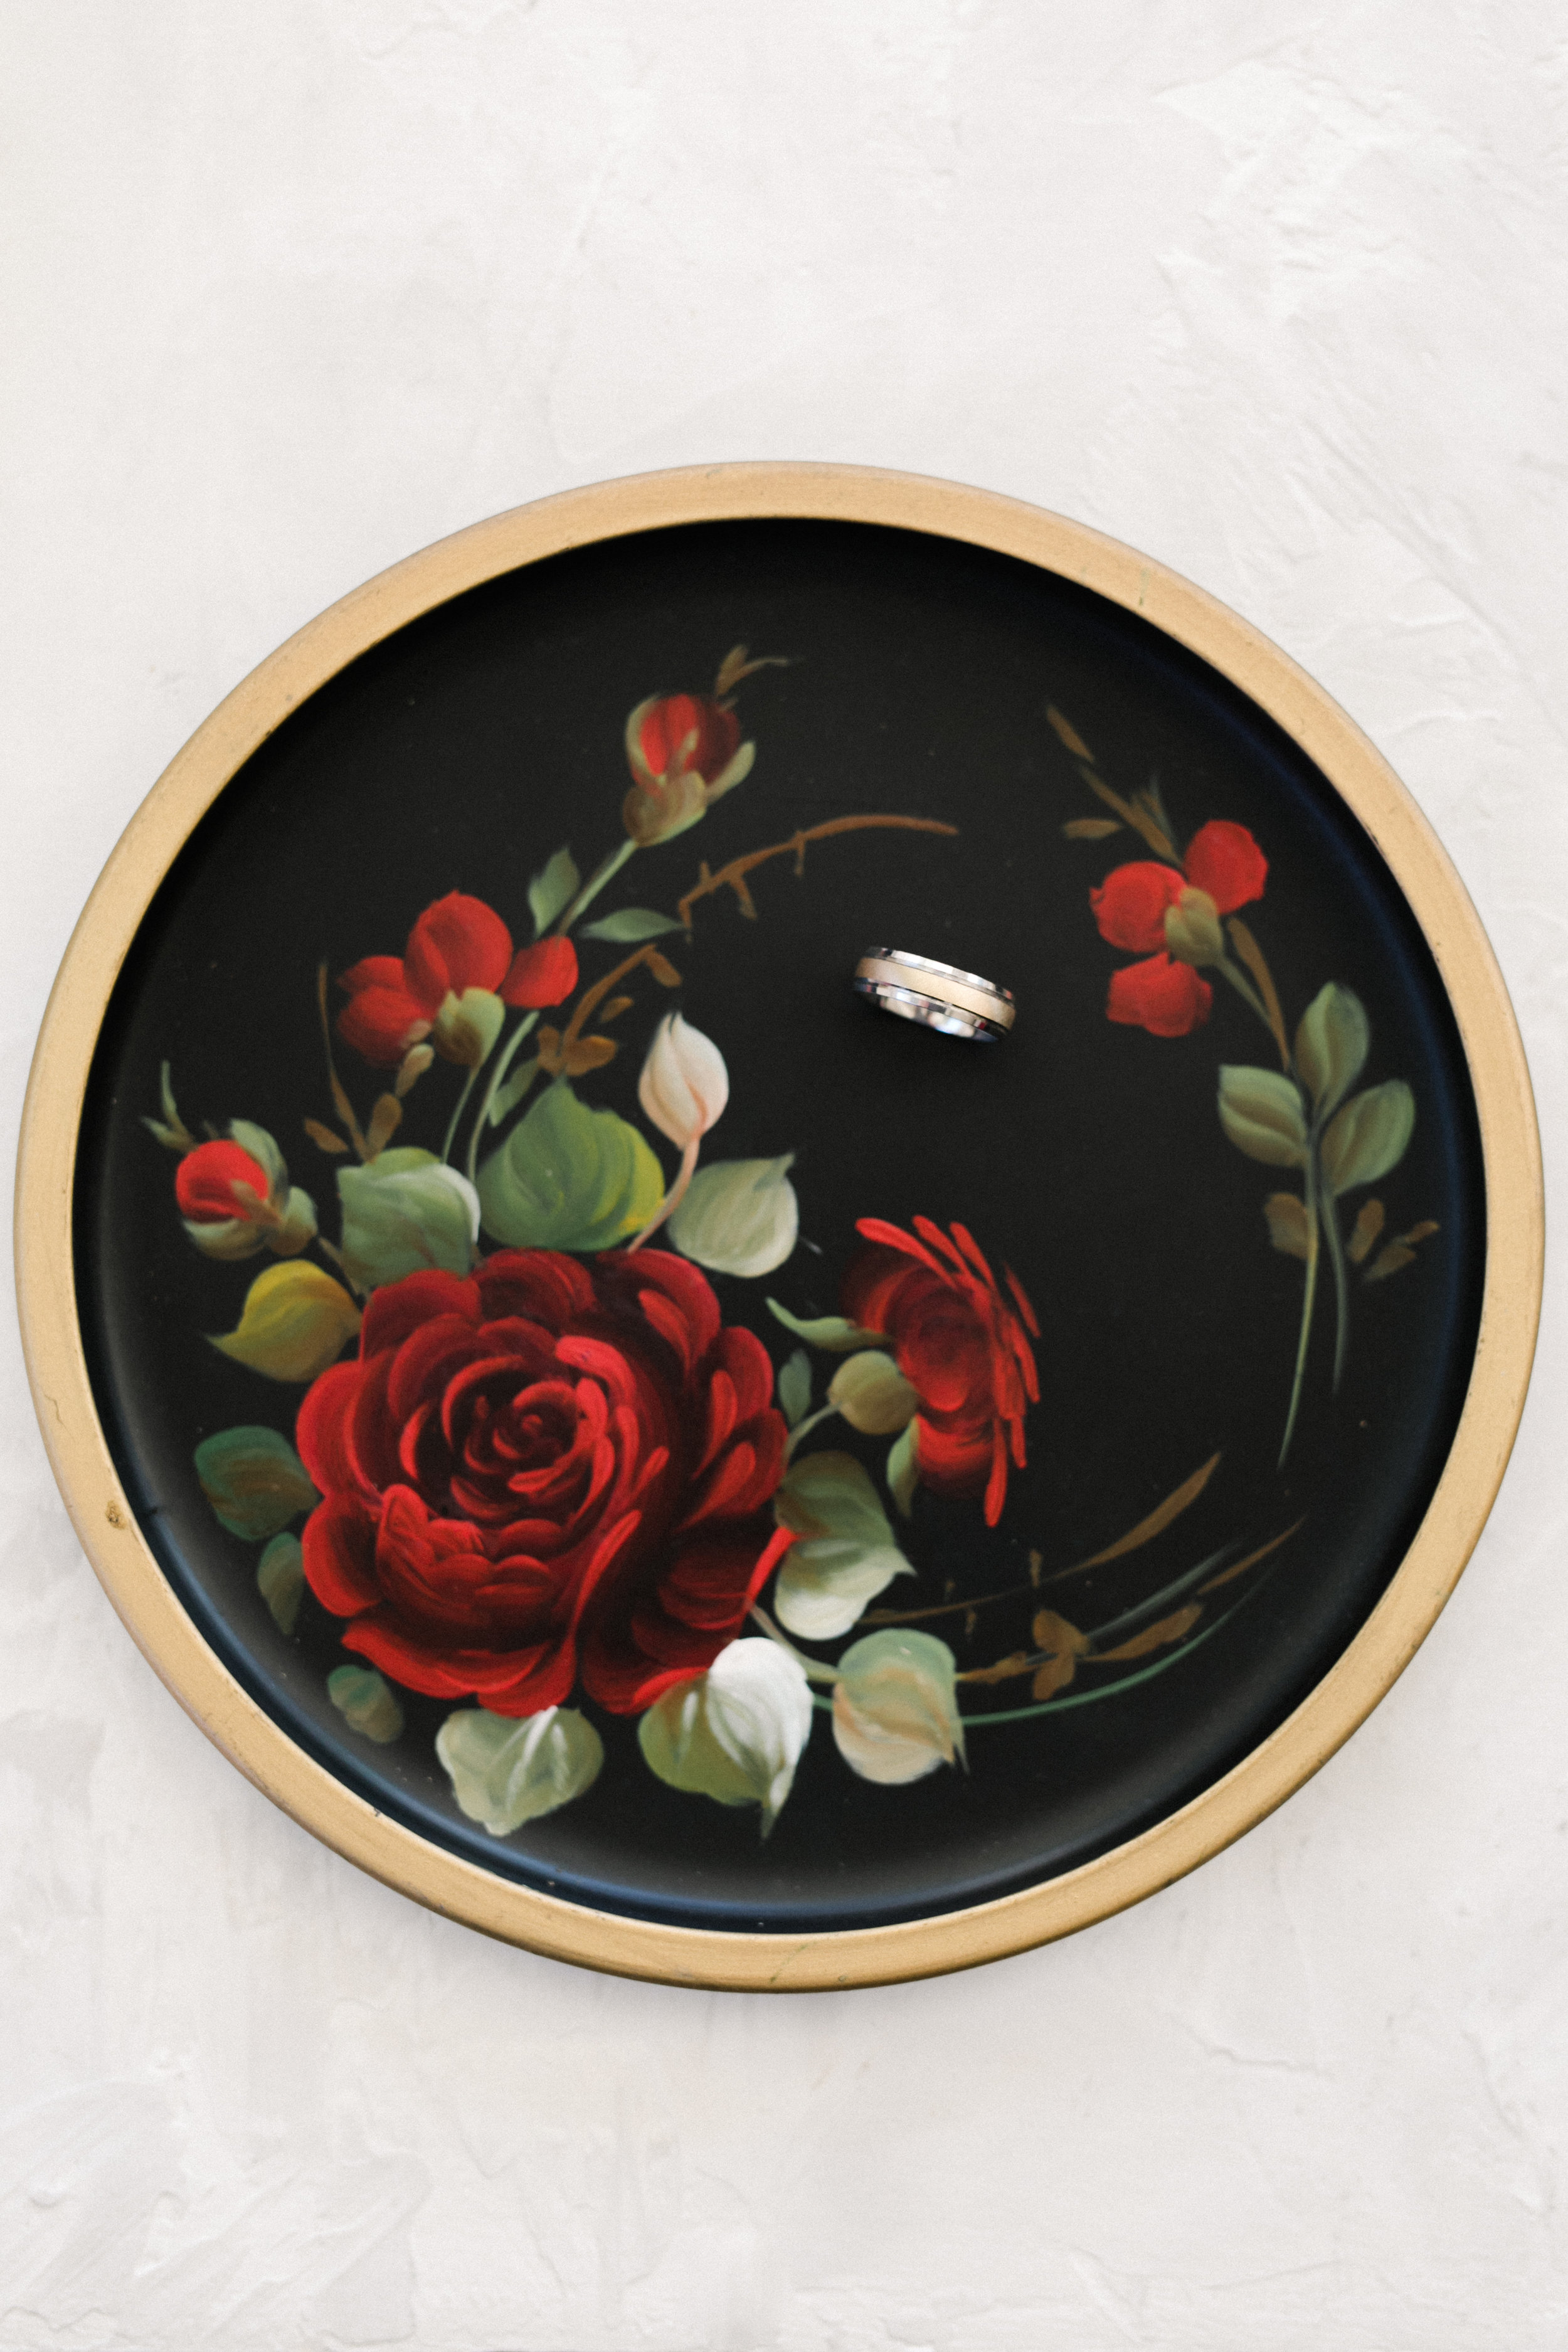 vintage floral plate with wedding ring